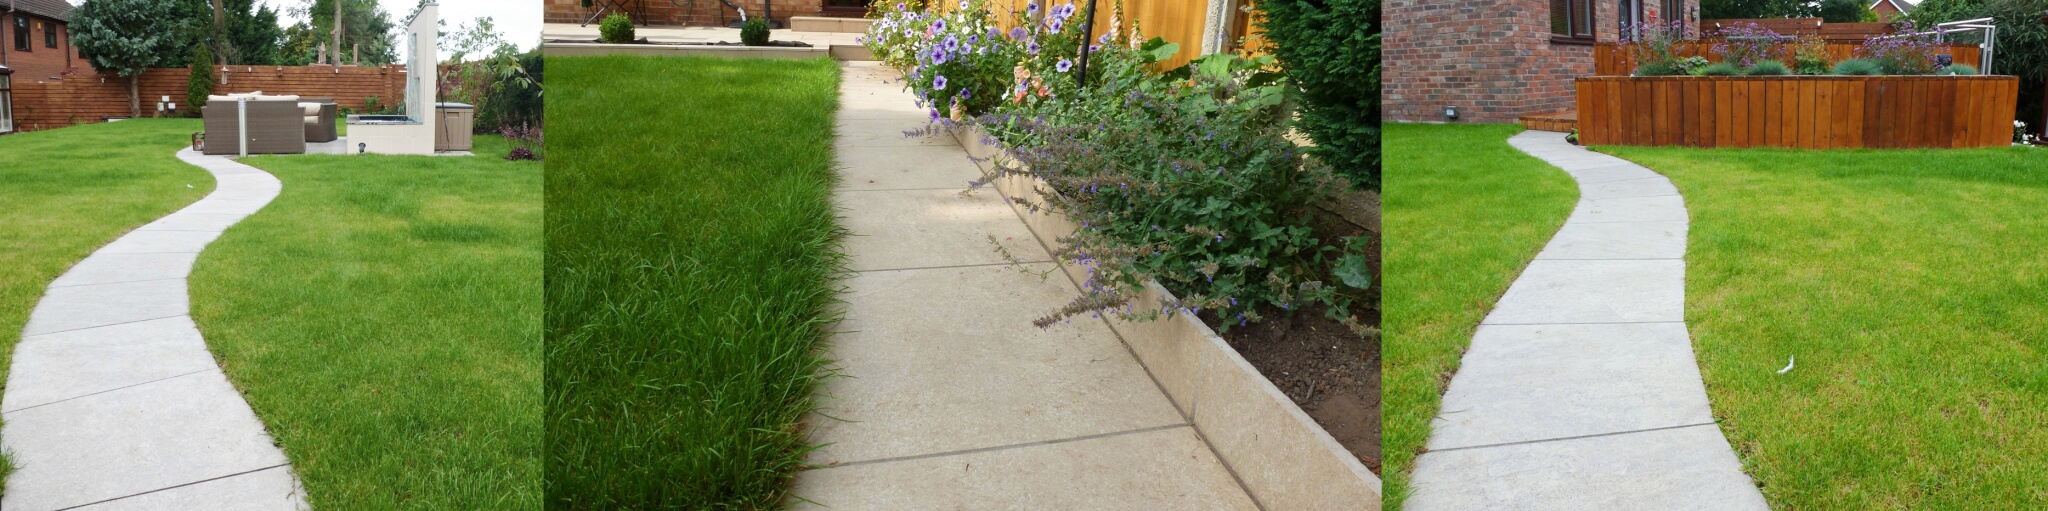 Top 28 types of pathways in landscaping affordable Types of pathways in landscaping